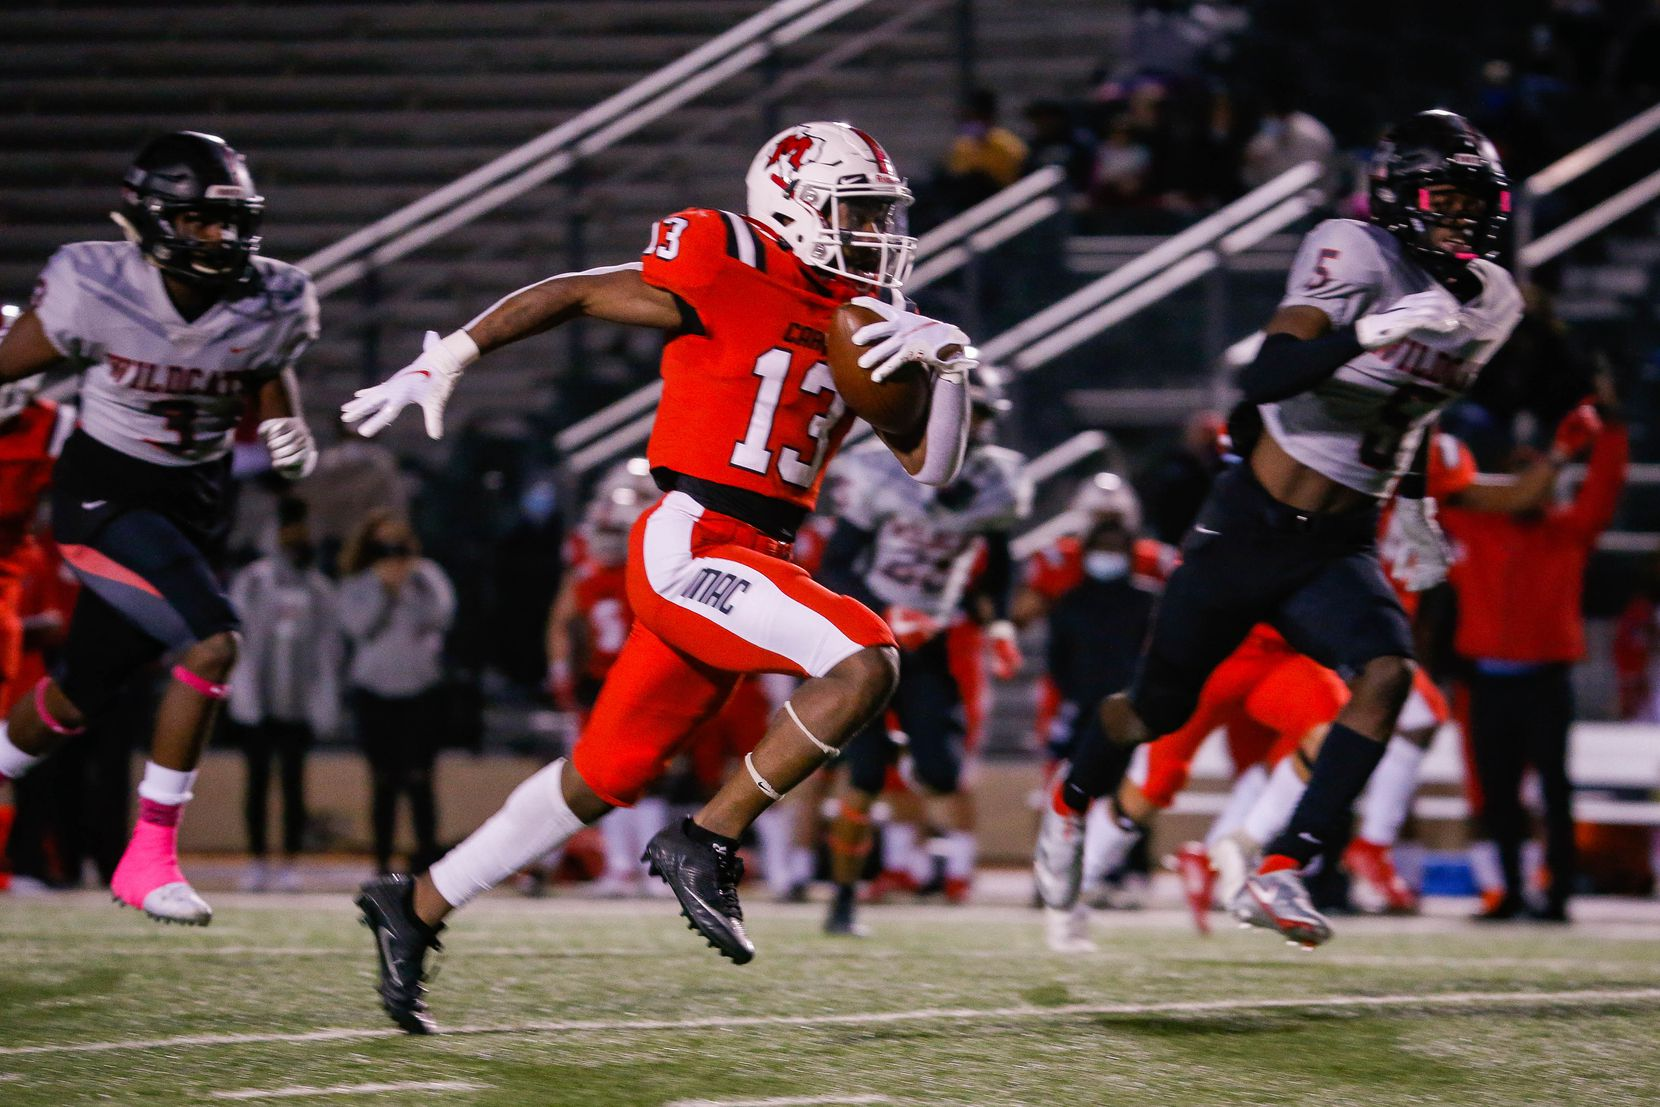 Irving MacArthur's Davison Morris (13) slips past the  Lake Highlands' defense for a touchdown during a the first quarter of a high school football game at Joy & Ralph Ellis Stadium in Irving on Friday, Oct. 23, 2020. (Juan Figueroa/ The Dallas Morning News)